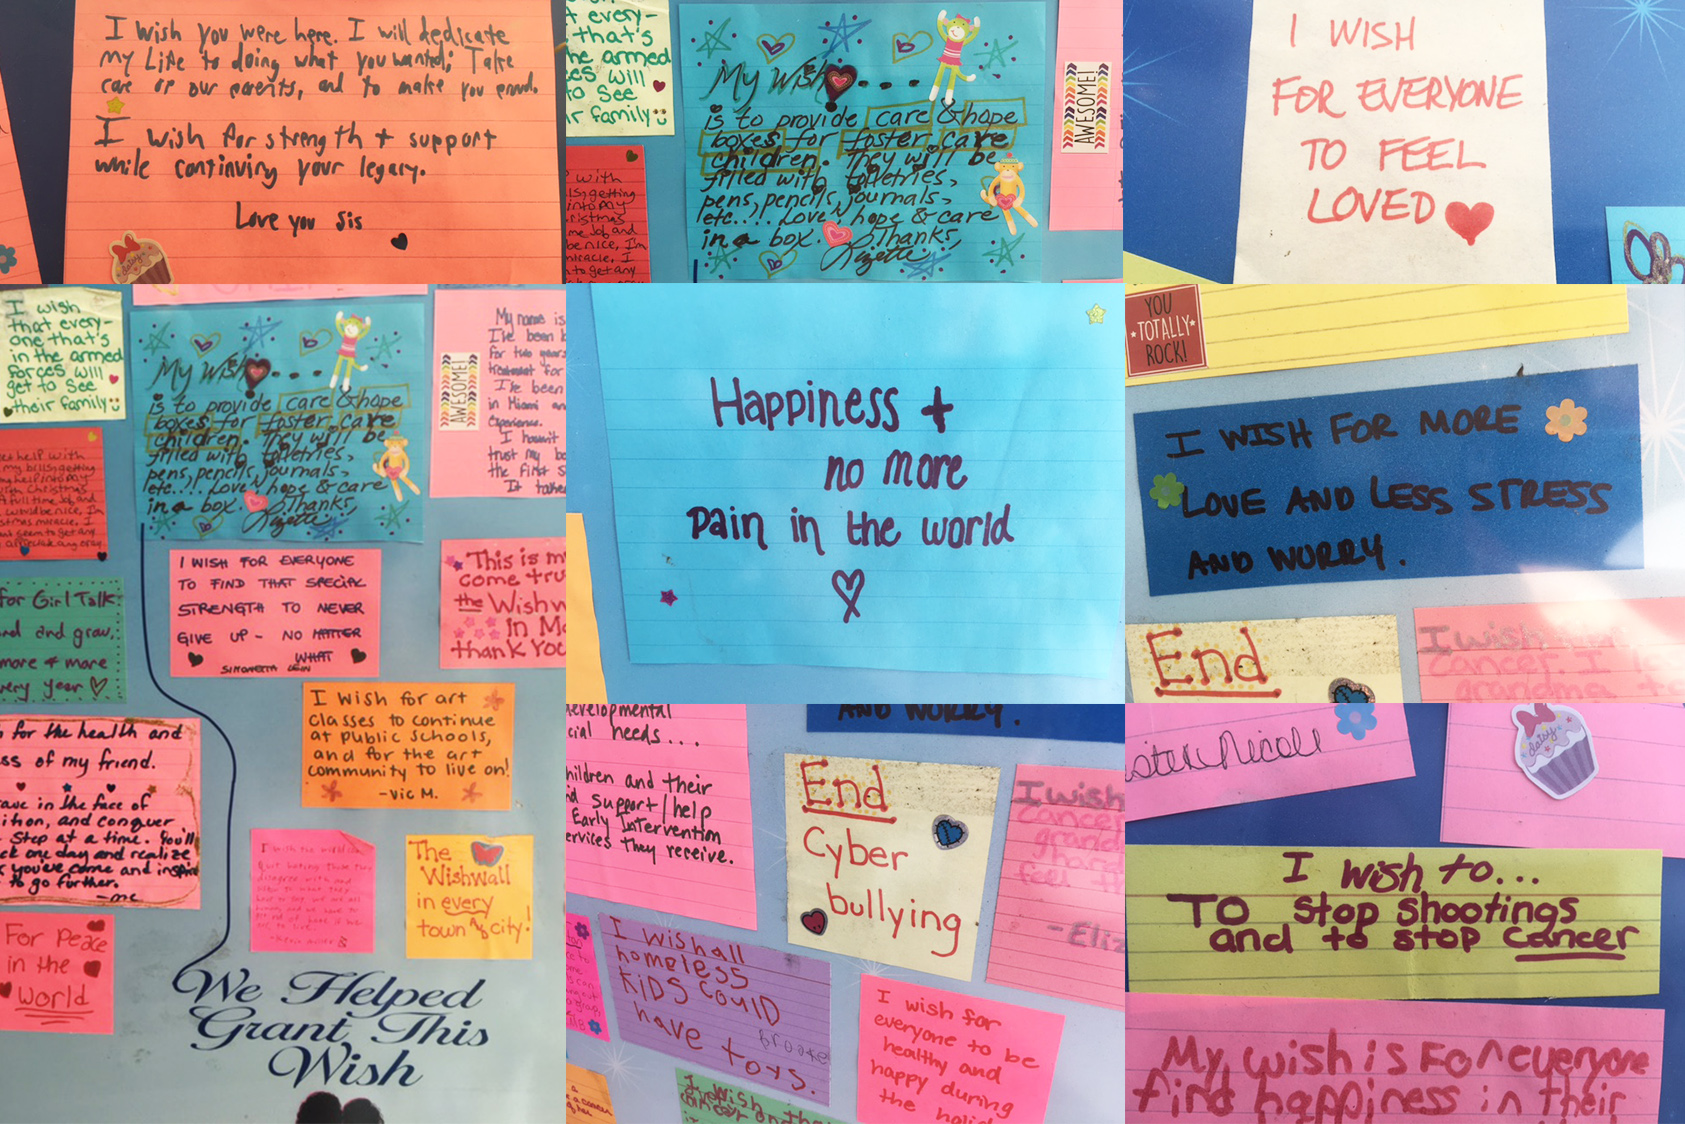 WISHES FROM THE WISHWALL